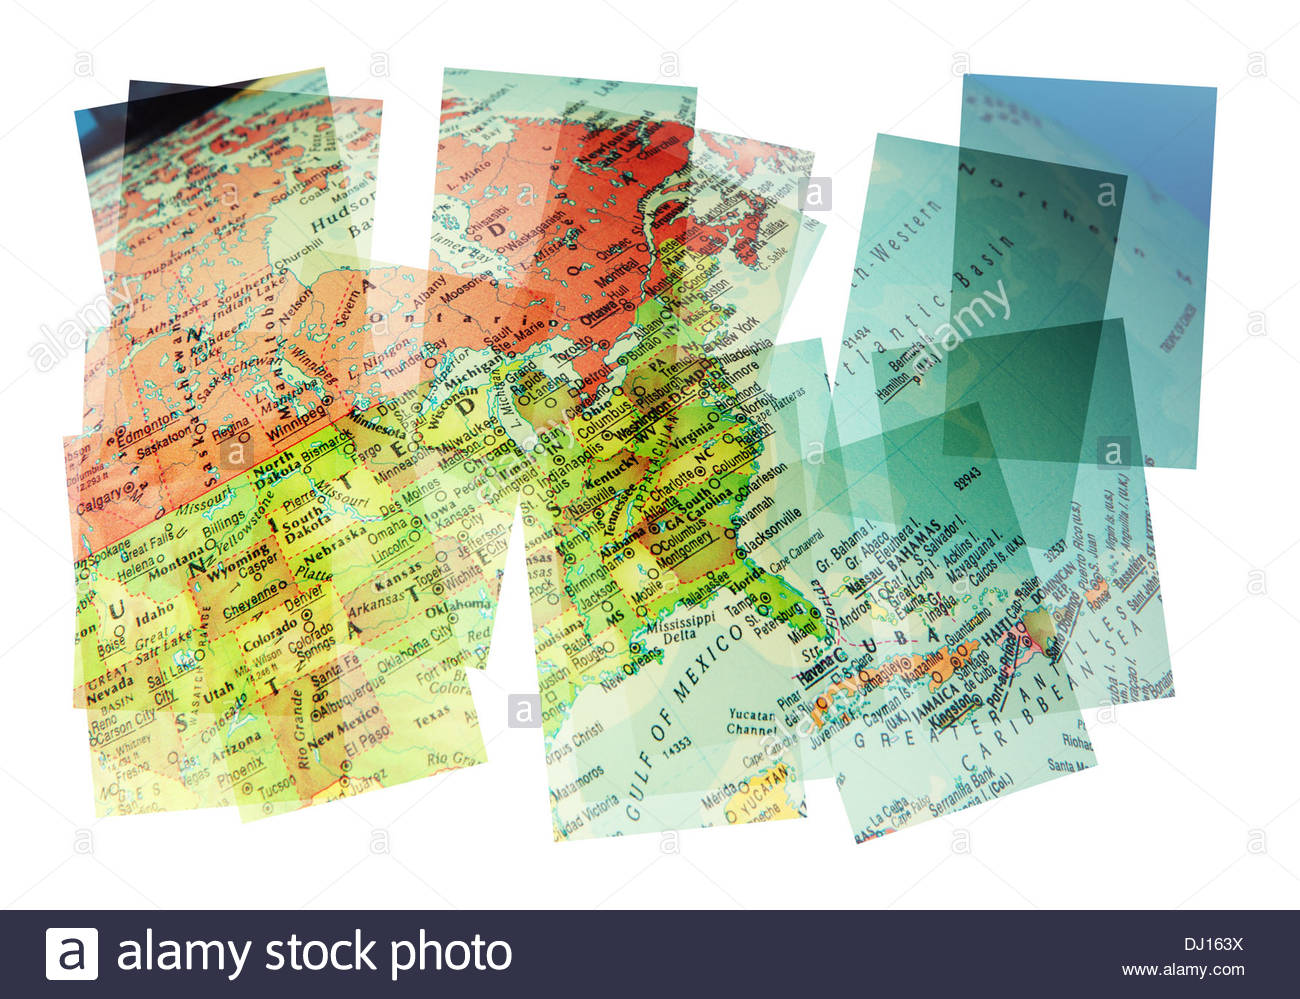 Usa Map Collage Stock Photo Royalty Free Image Alamy - Us map collage